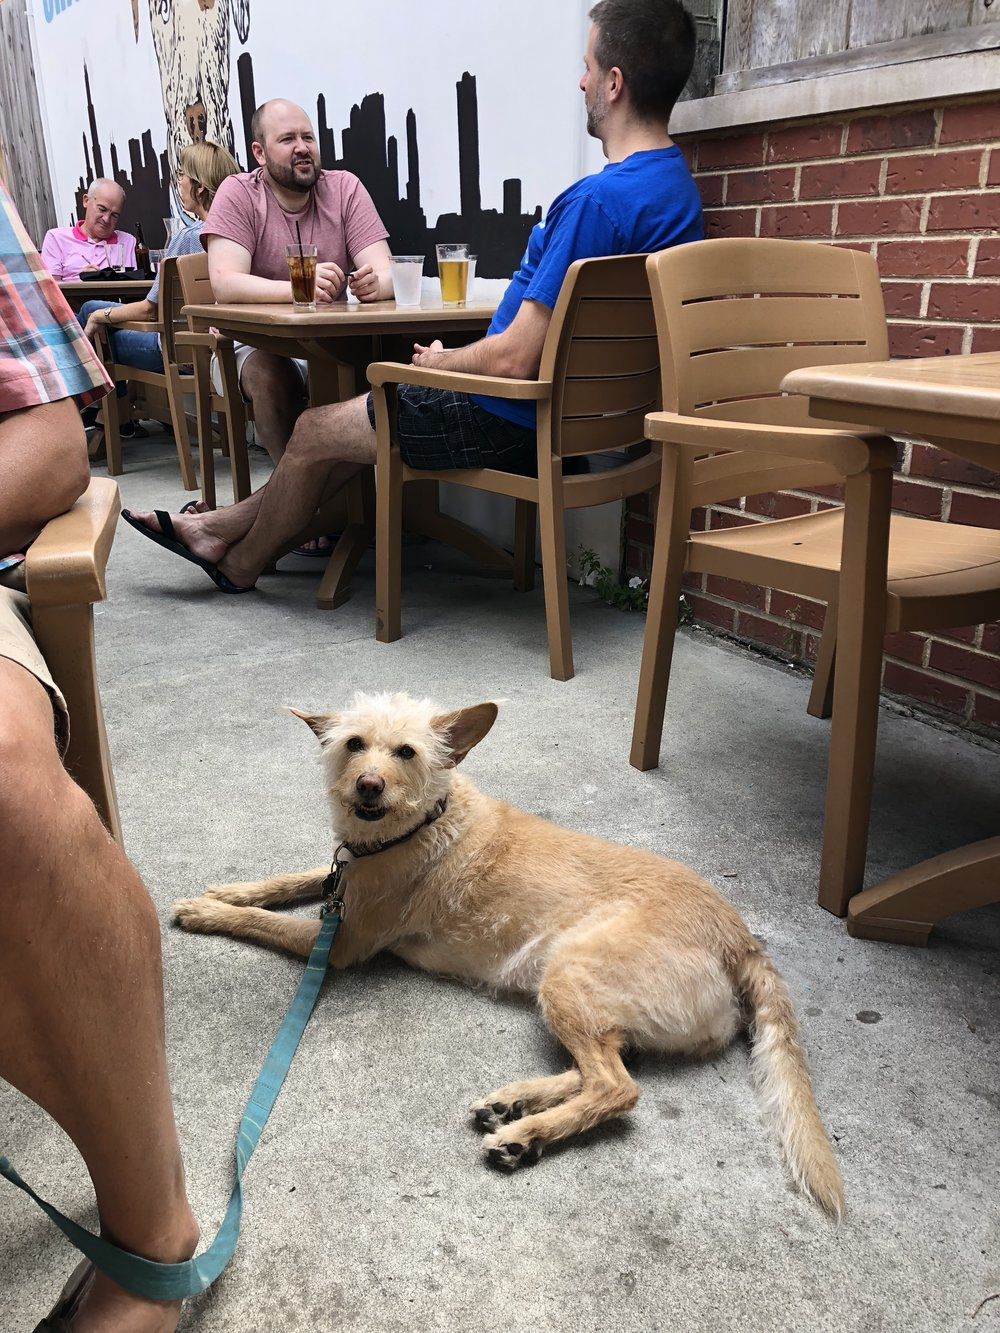 George Street Pub - GSP is a sports bar with a dog-friendly back patio. This Lincoln Park neighborhood bar has a solid beer list and is a Maryland college and professional sports hub.